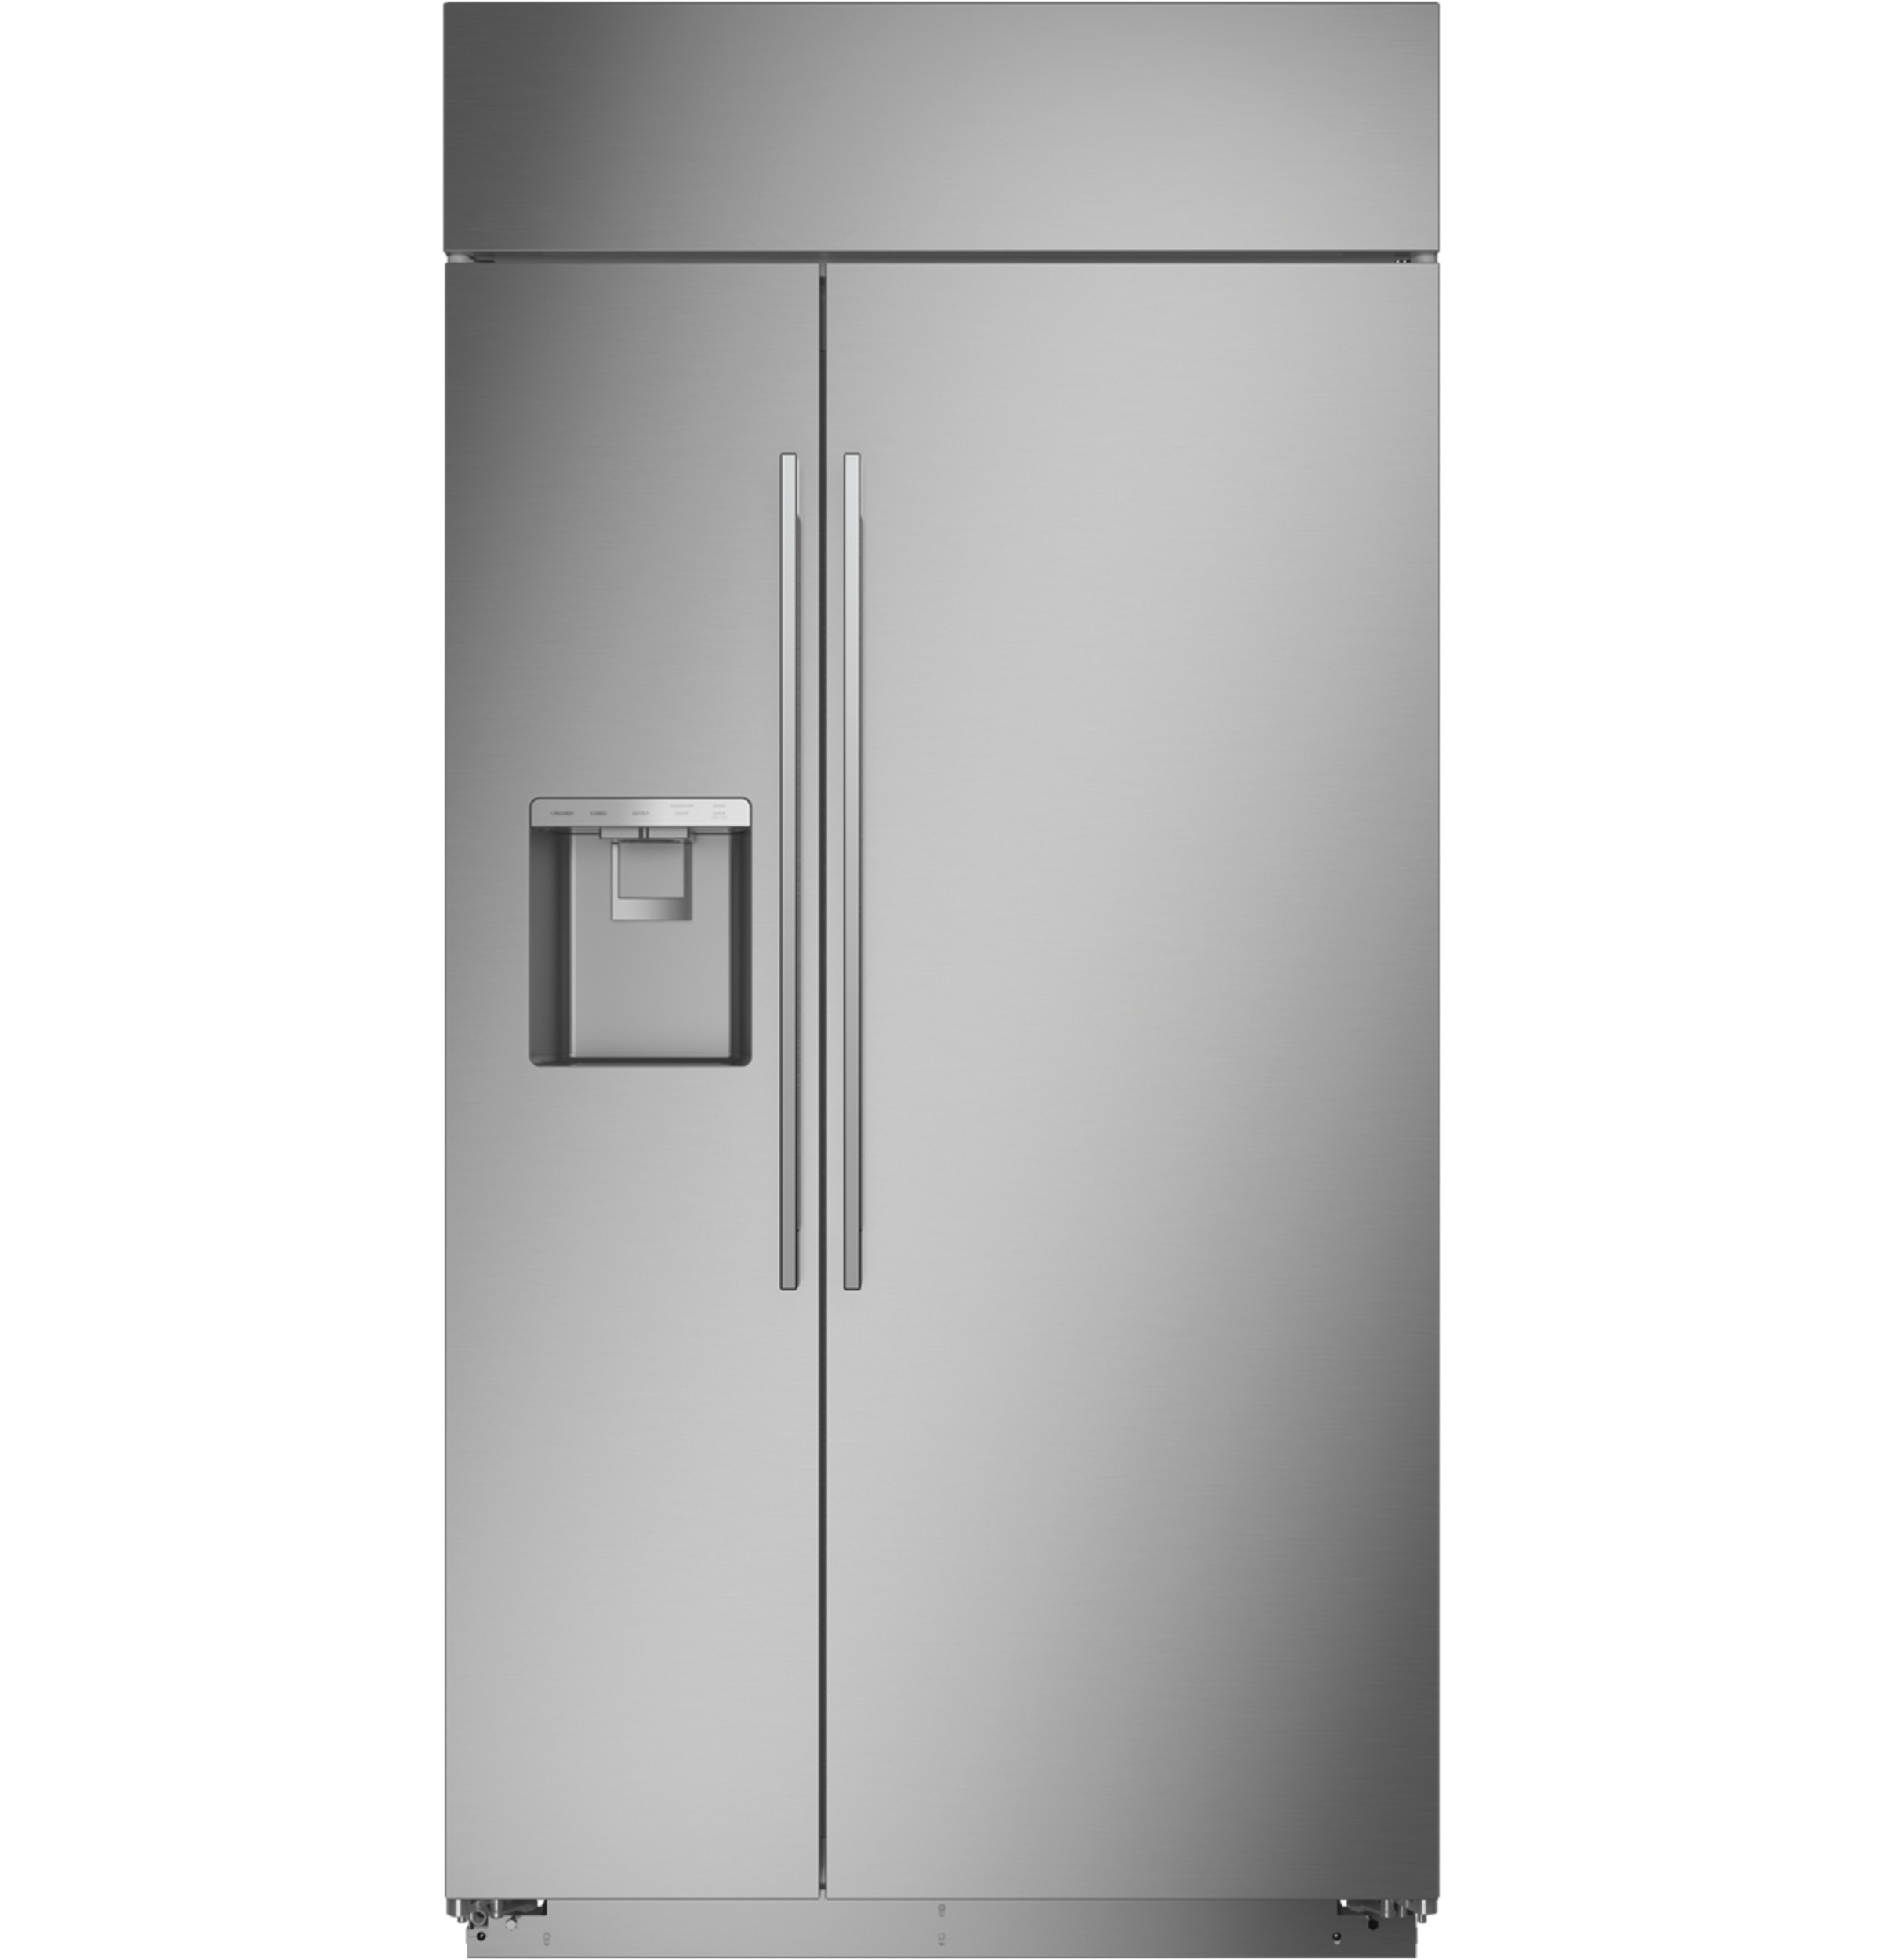 "Monogram Monogram 42"" Smart Built-In Side-by-Side Refrigerator with Dispenser"